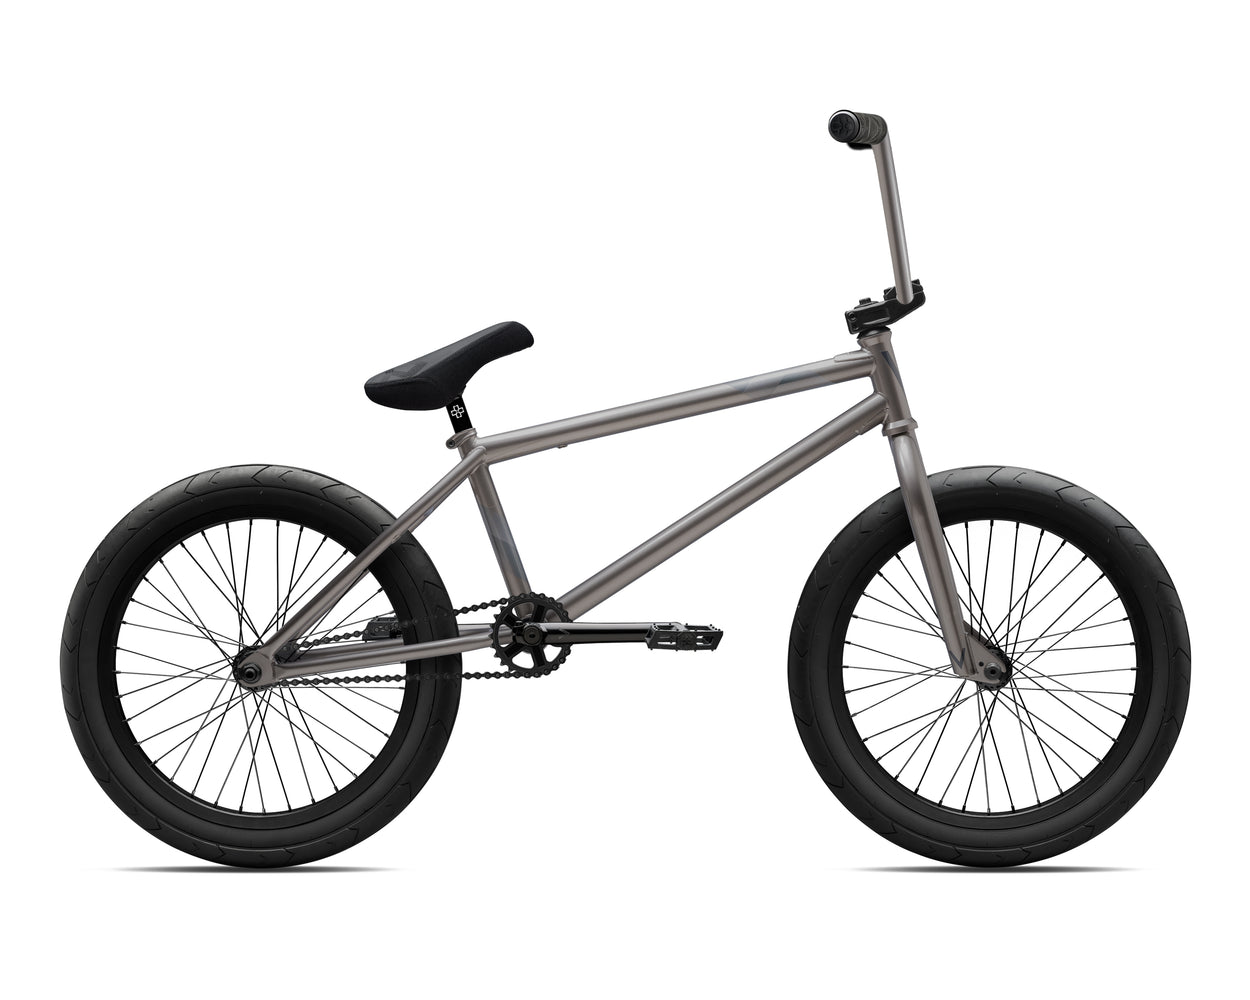 Verde 2018 Vex XL Bike-Gloss Metallic Gray